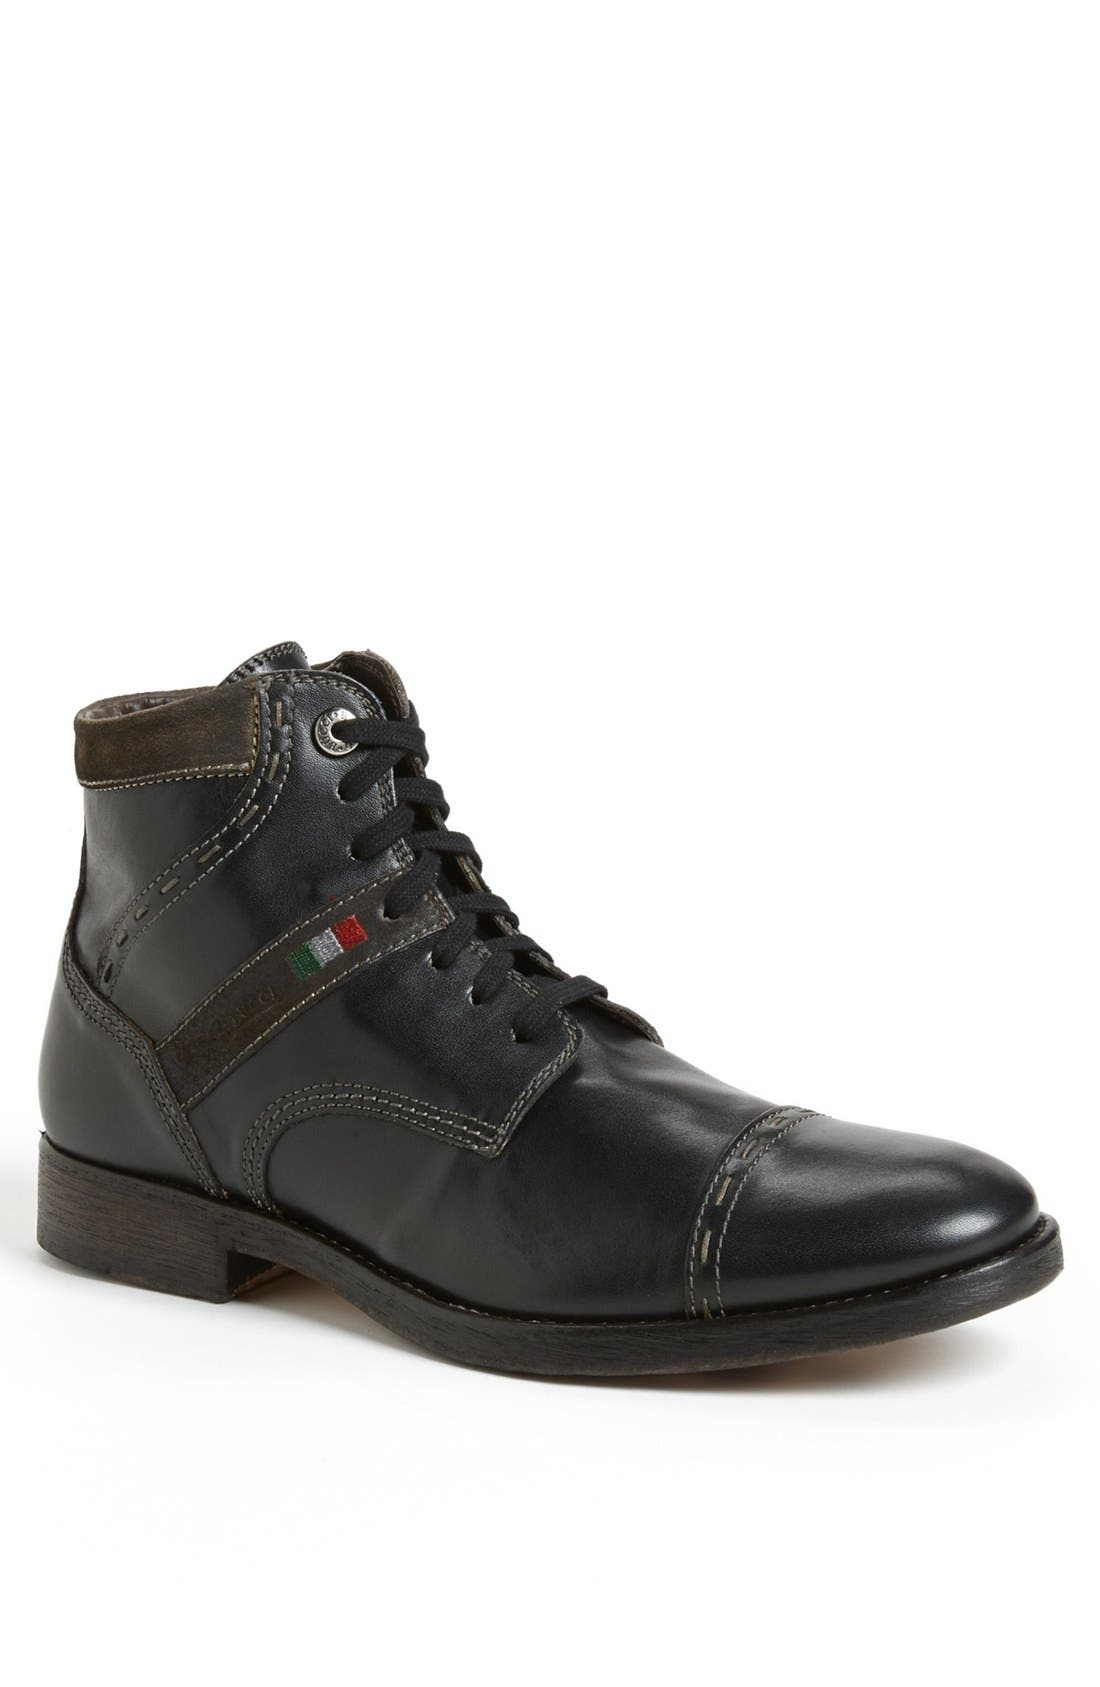 Alternate Image 1 Selected - Bacco Bucci 'Barone' Cap Toe Boot (Men)